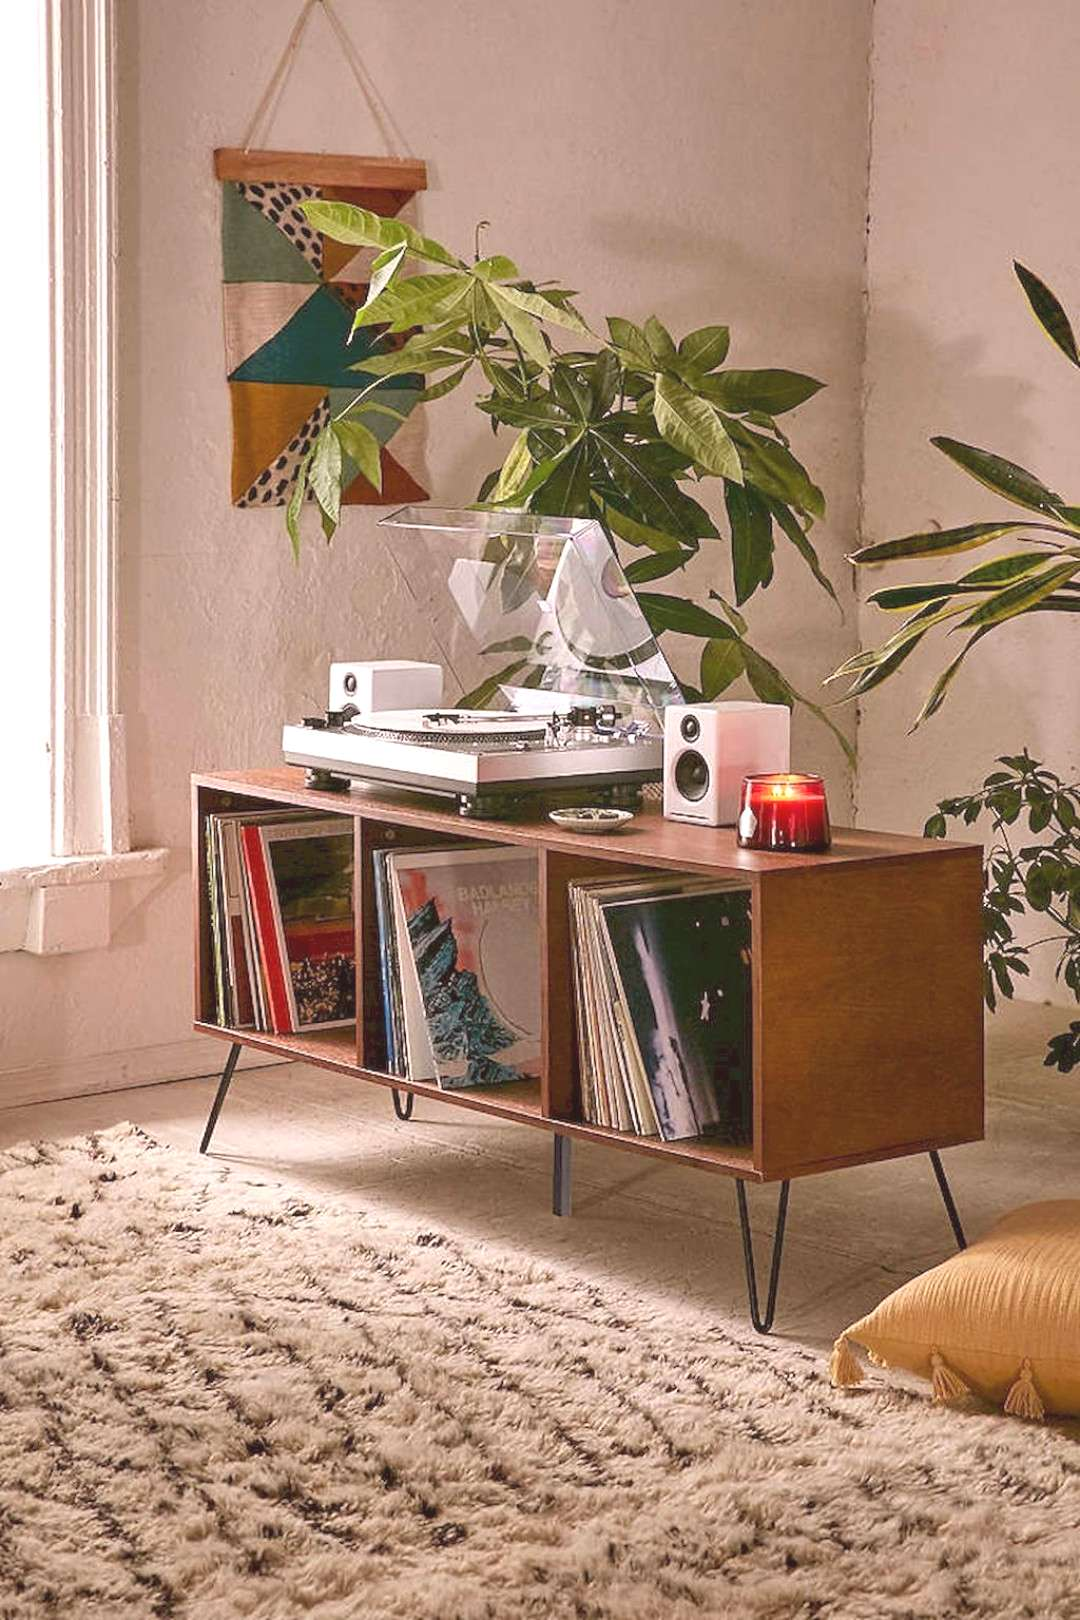 Arresting Retro Living Room Decorating Ideas on A Budget